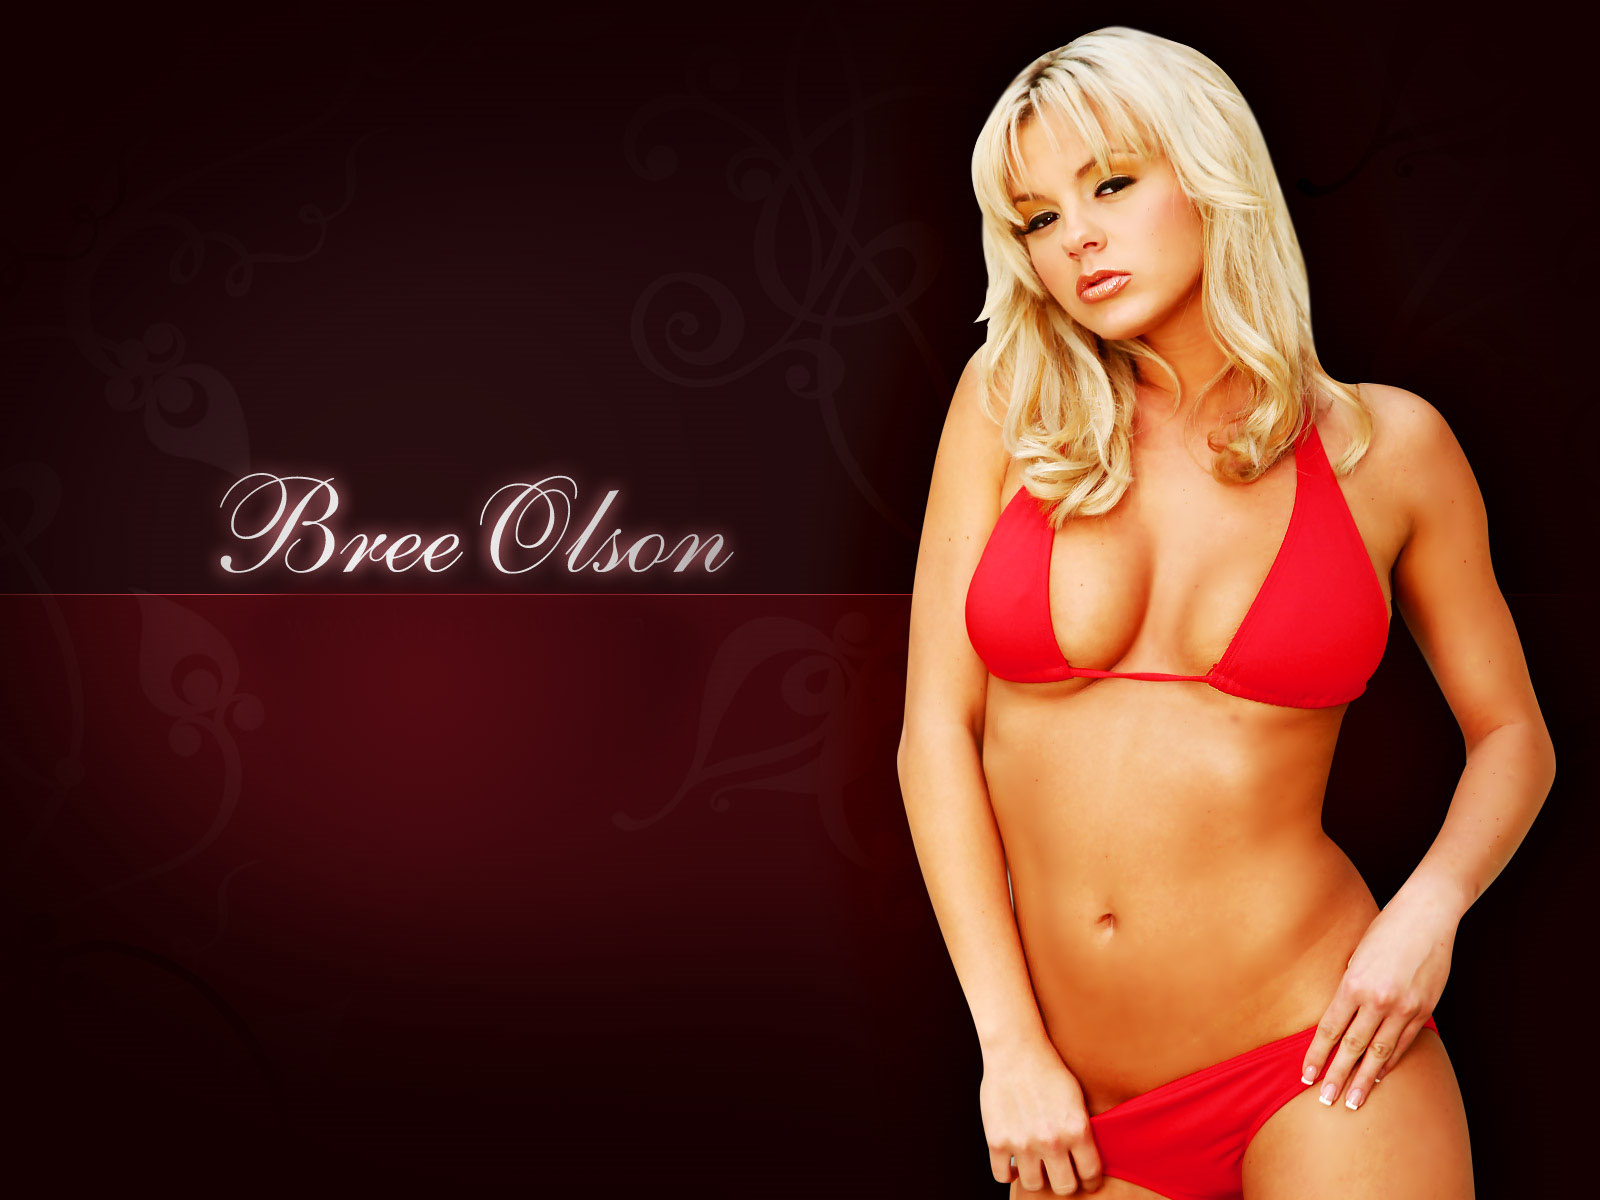 bree-olson Wallpaper